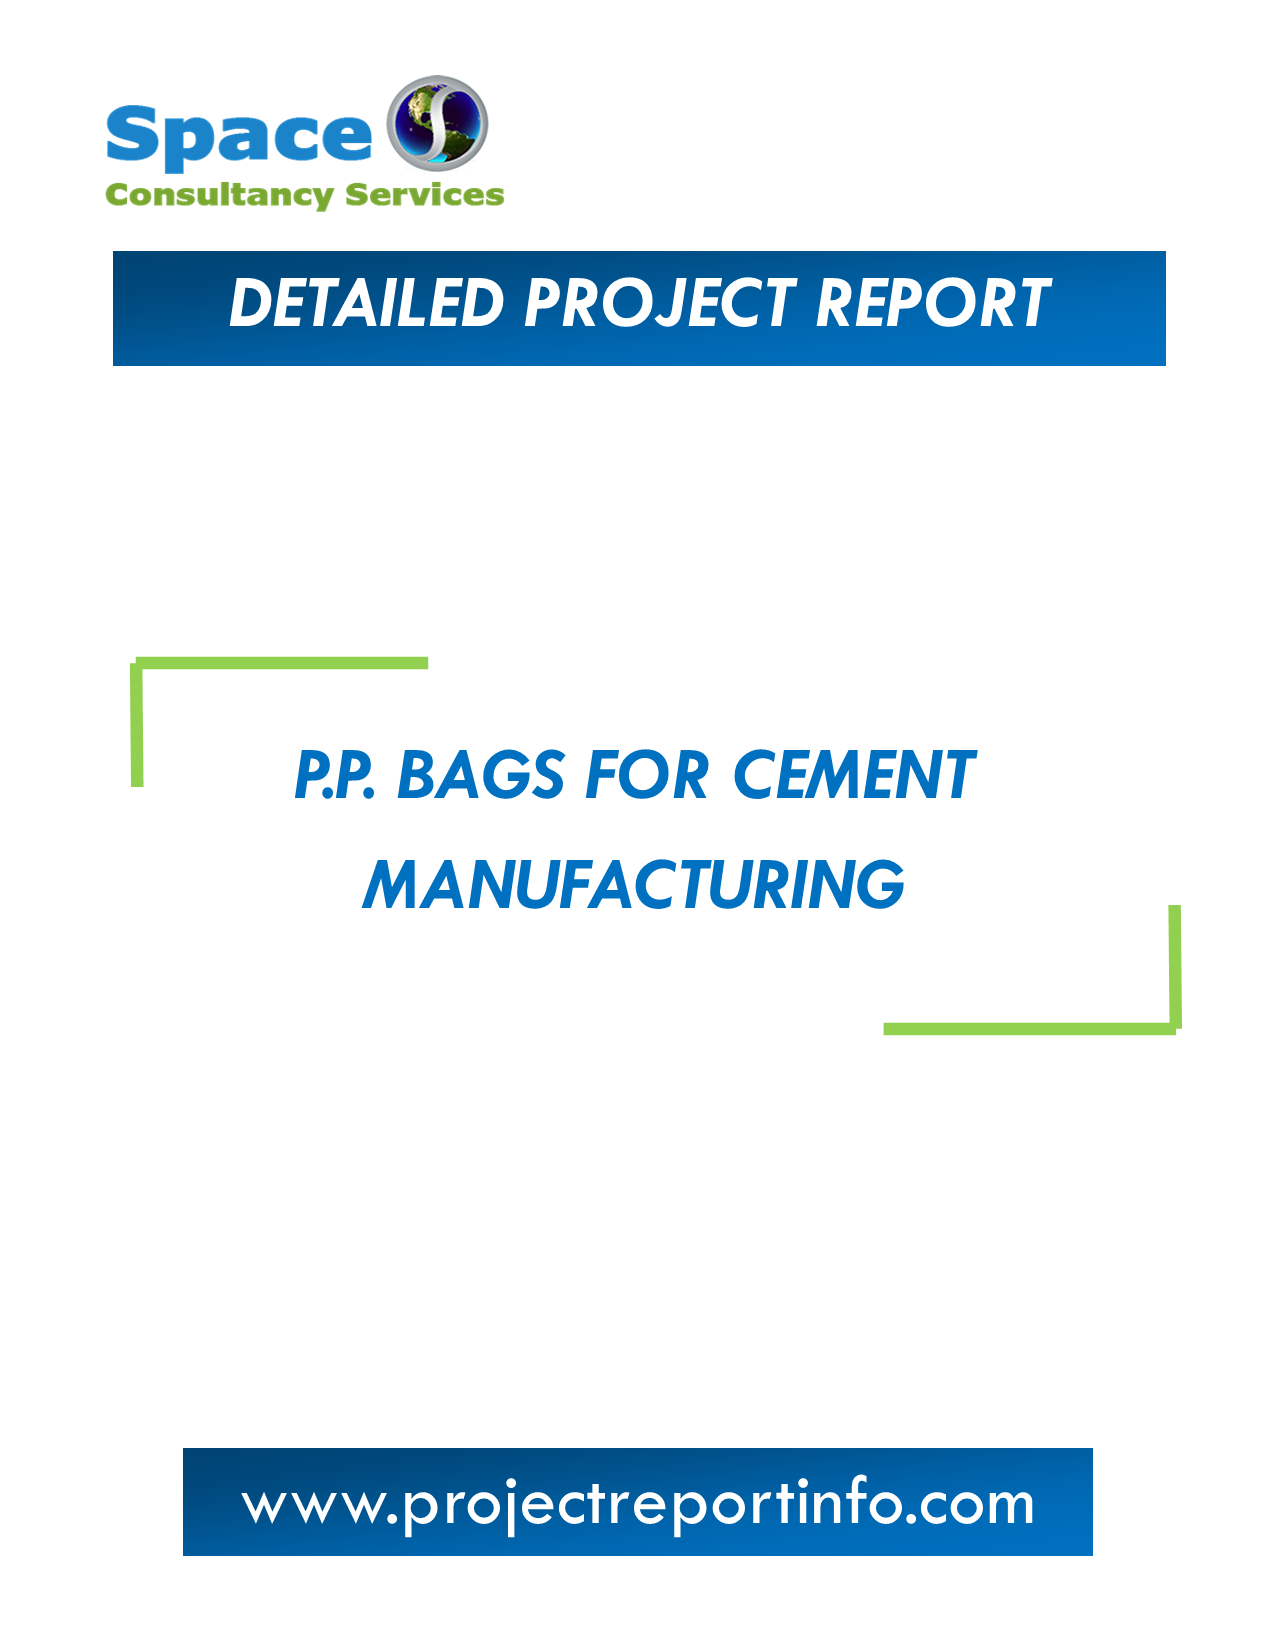 Project Report on P.P. Bags for Cement Manufacturing